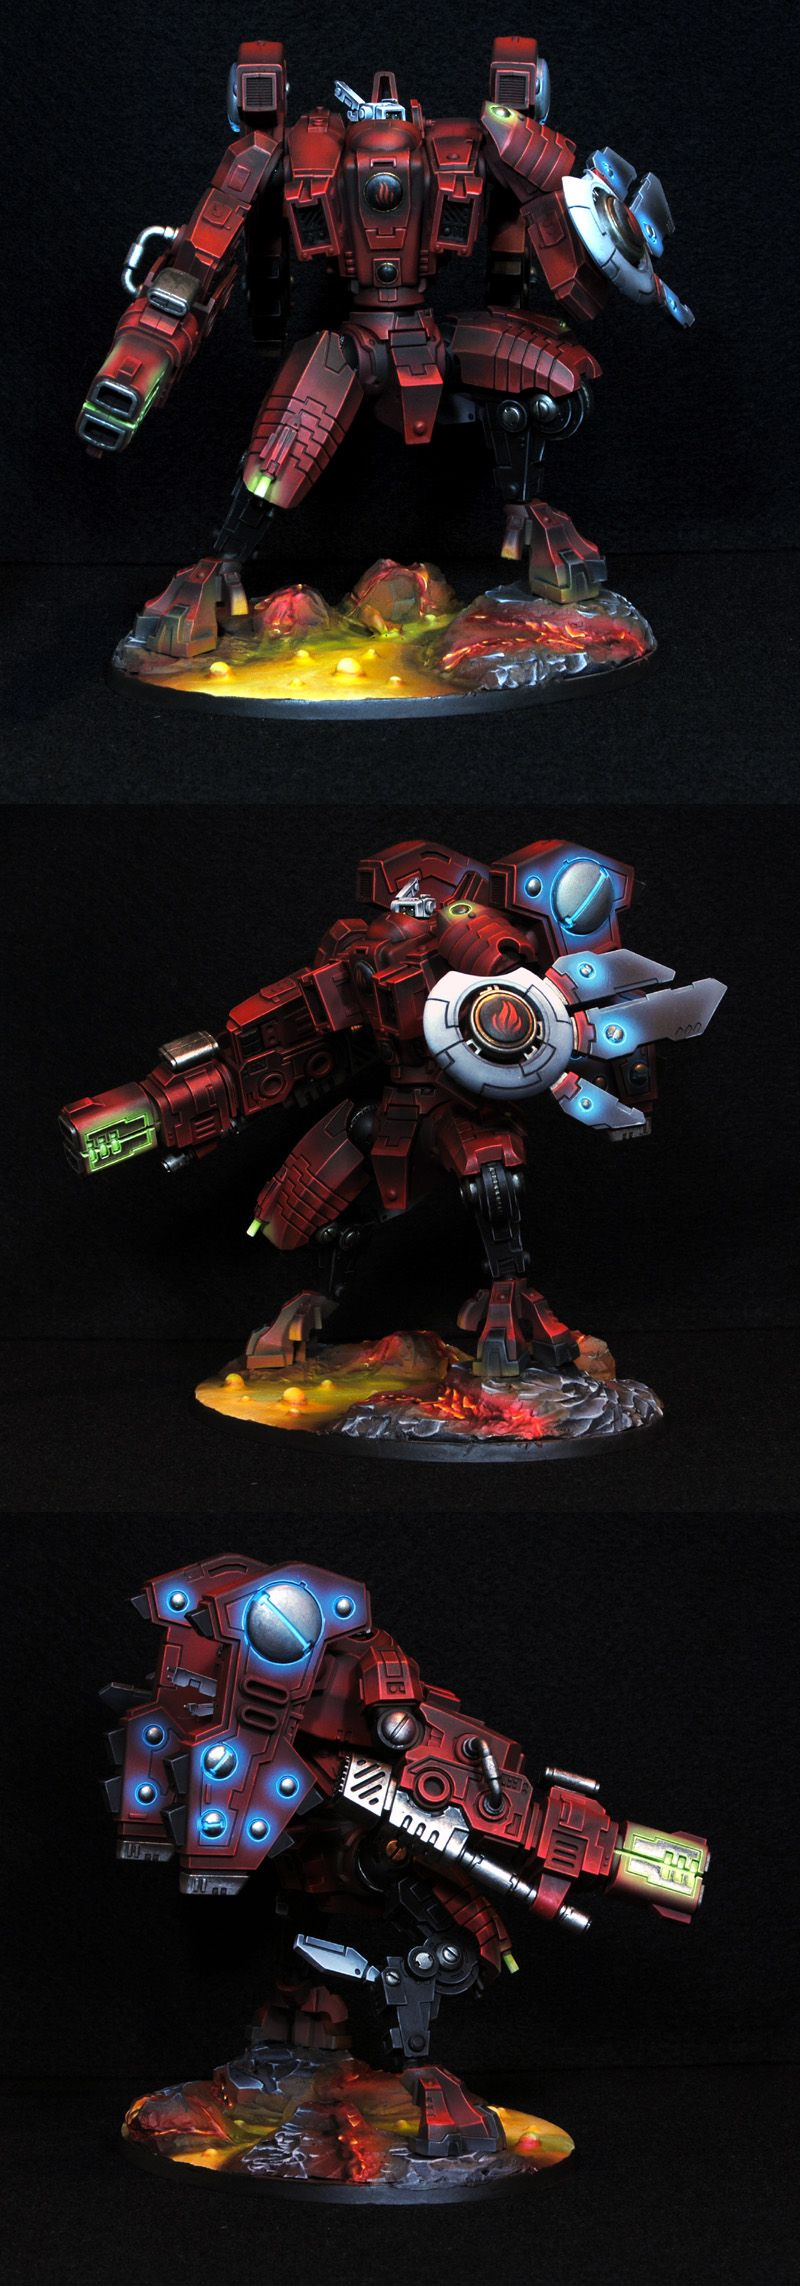 subdued lighting. Warhammer 40k Tau Riptide - Incredible Subdued Lighting On This One